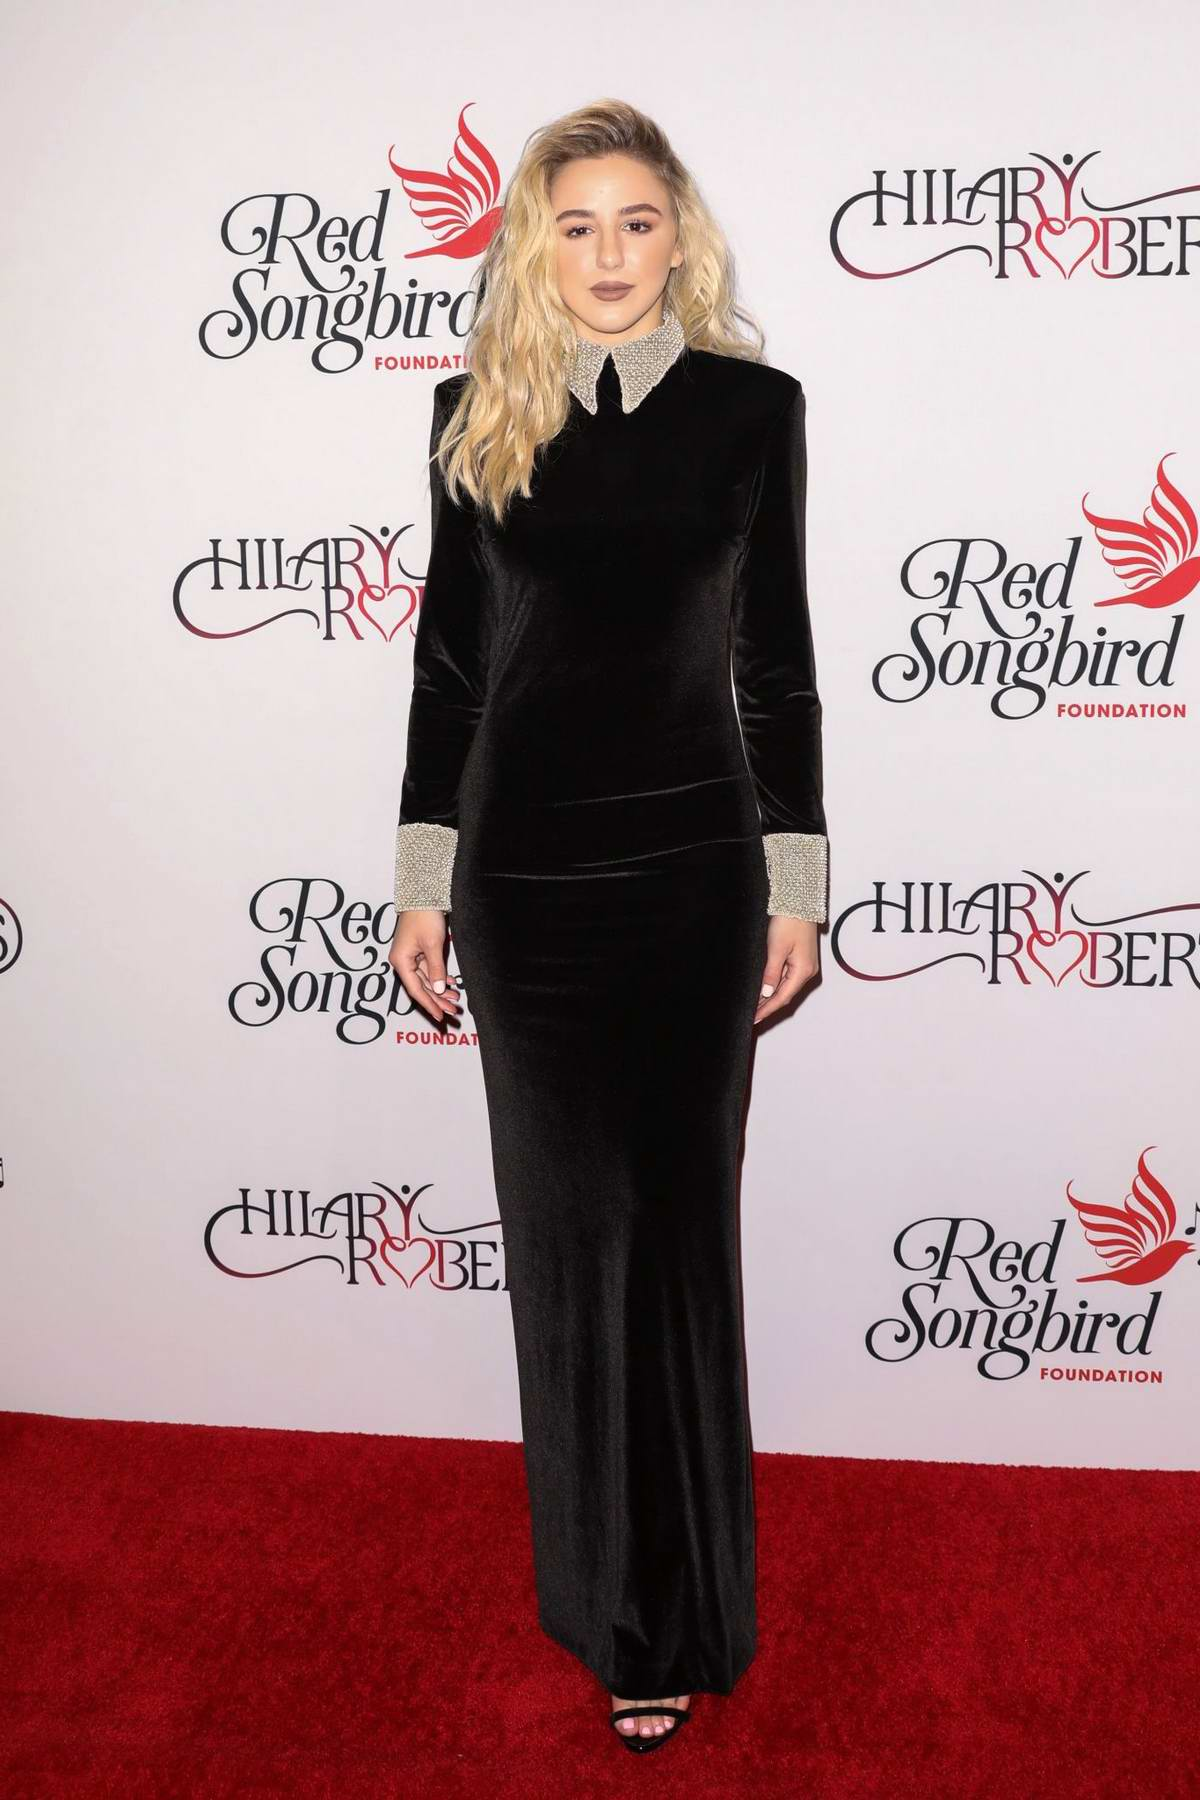 Chloe Lukasiak attends Hilary Roberts' birthday celebration and the Red Songbird Foundation launch party in Beverly Hills, Los Angeles